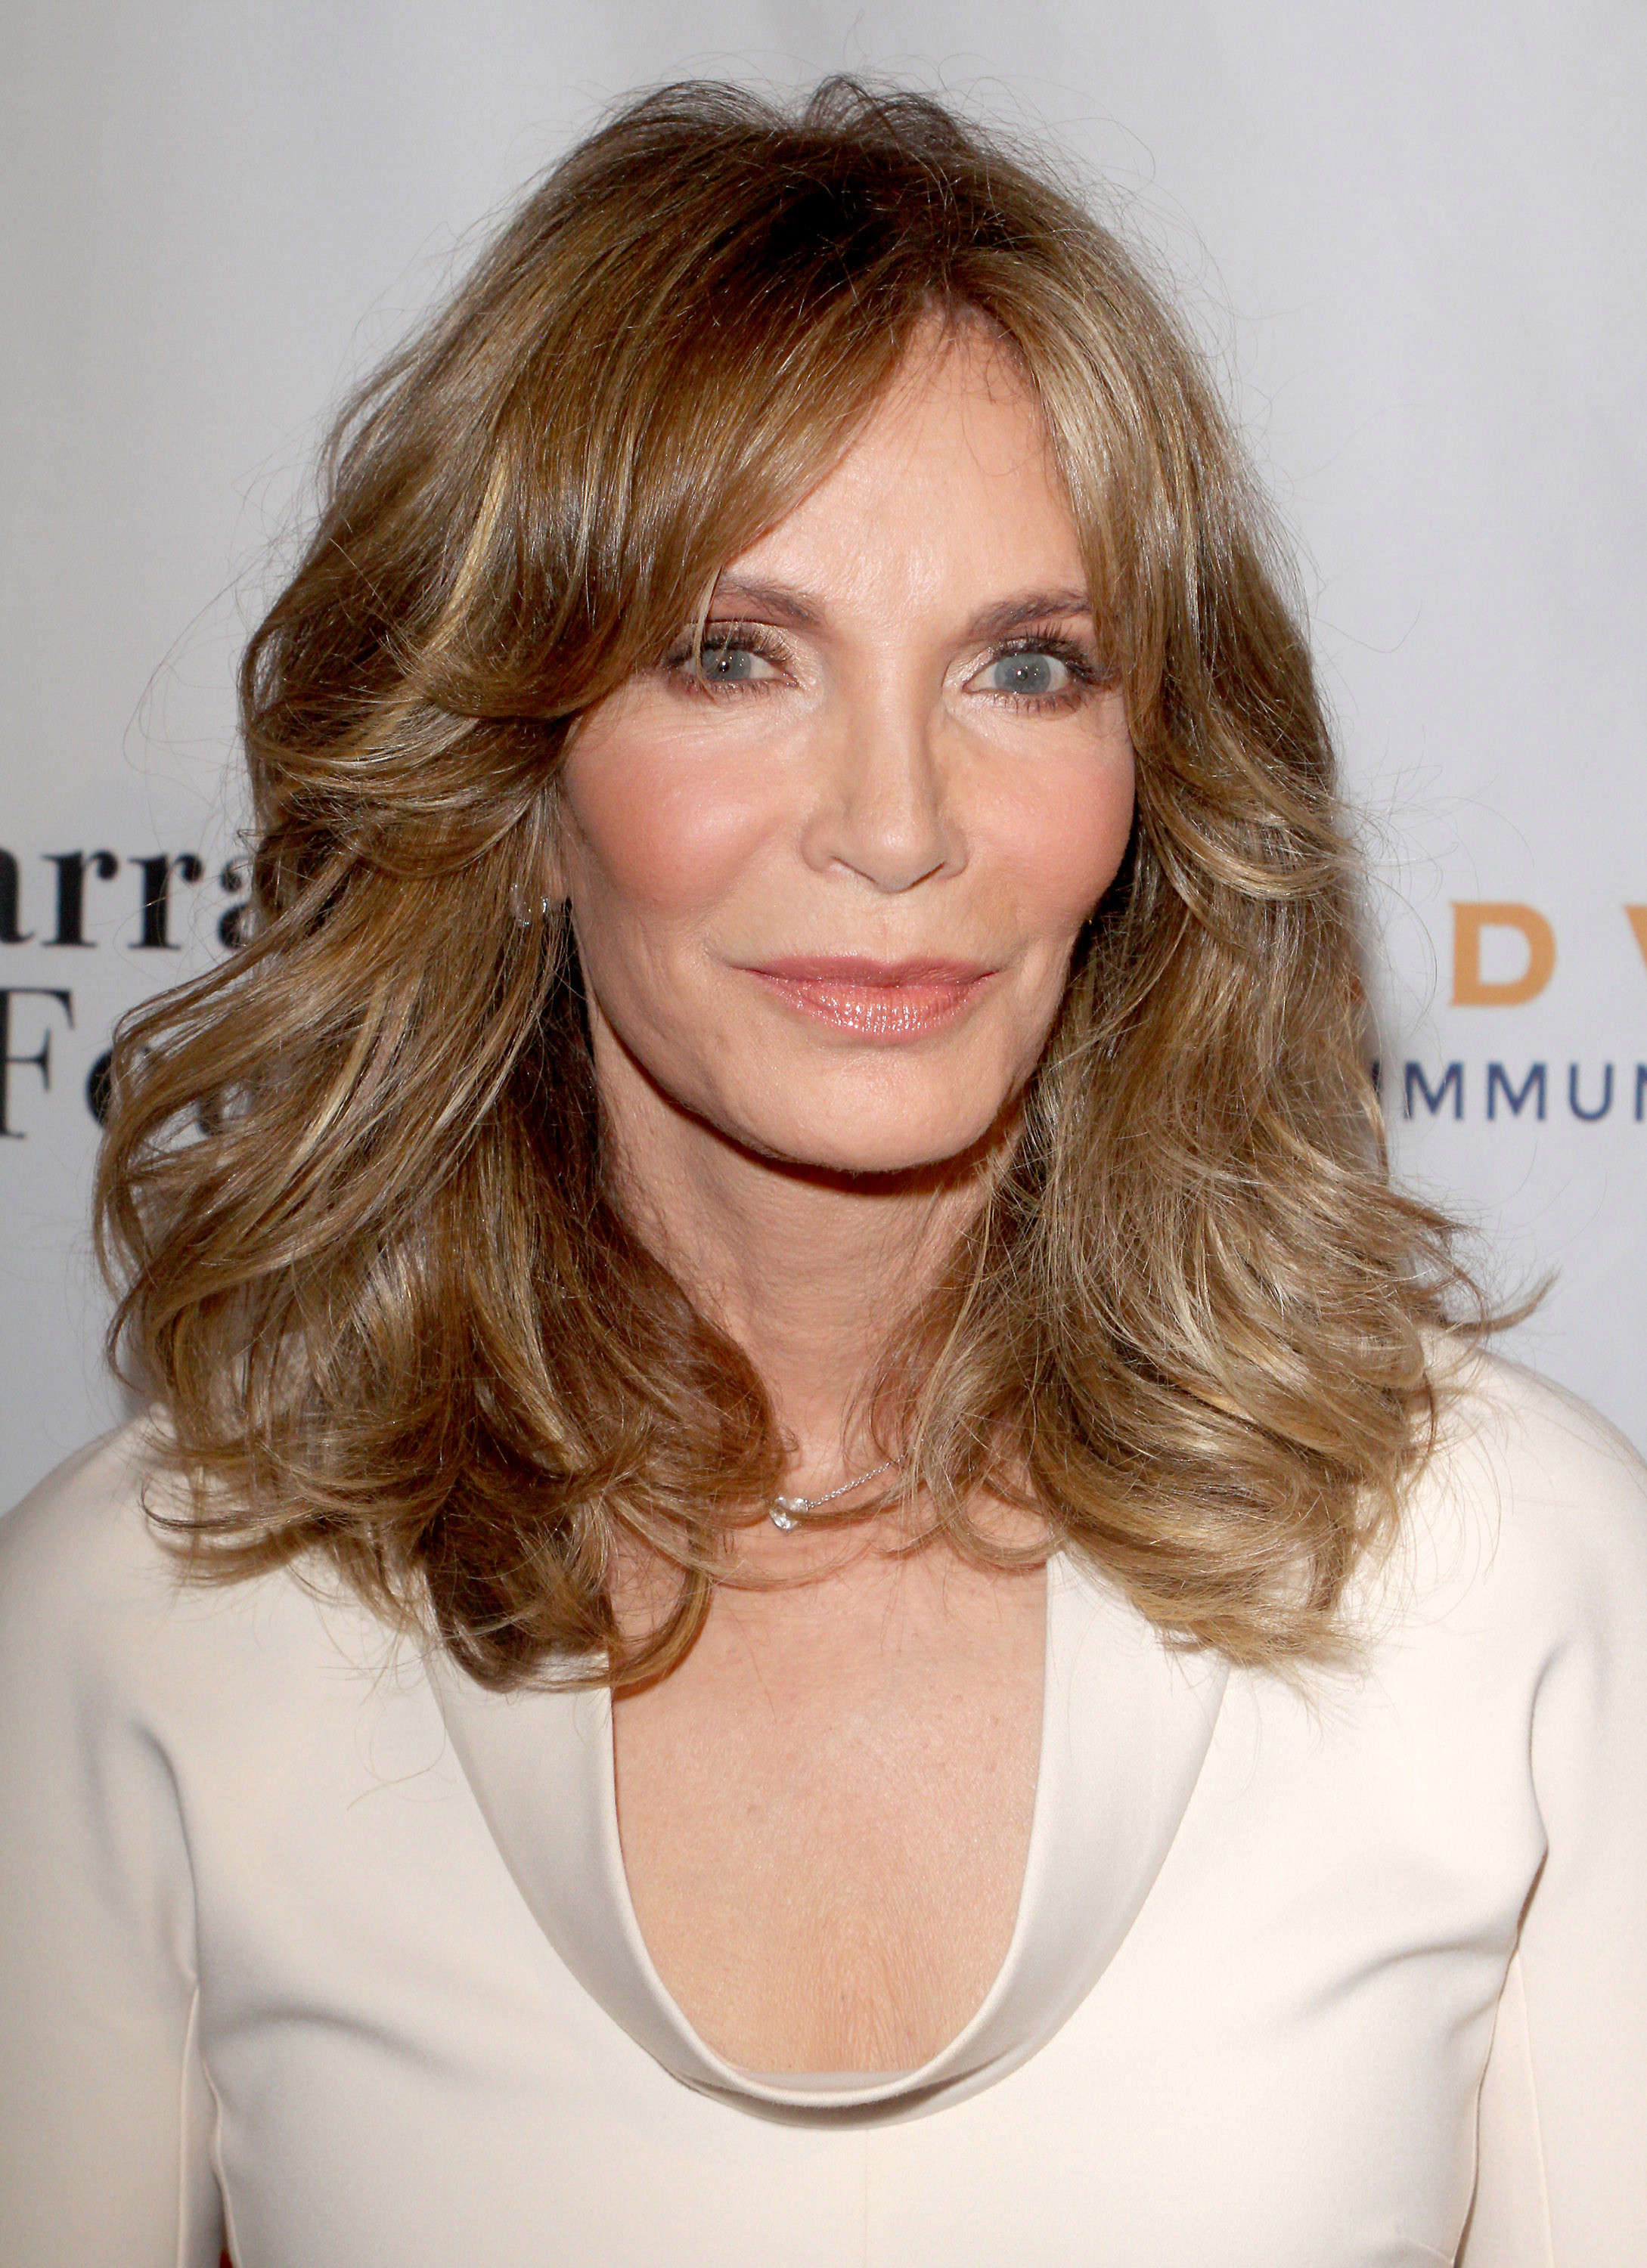 Jaclyn Smith attending event for Farrah Fawcett Foundation. She played the role of Kelly Garrett in Charlie's Angels alongside, Kate Jackson and Farrah Fawcett.